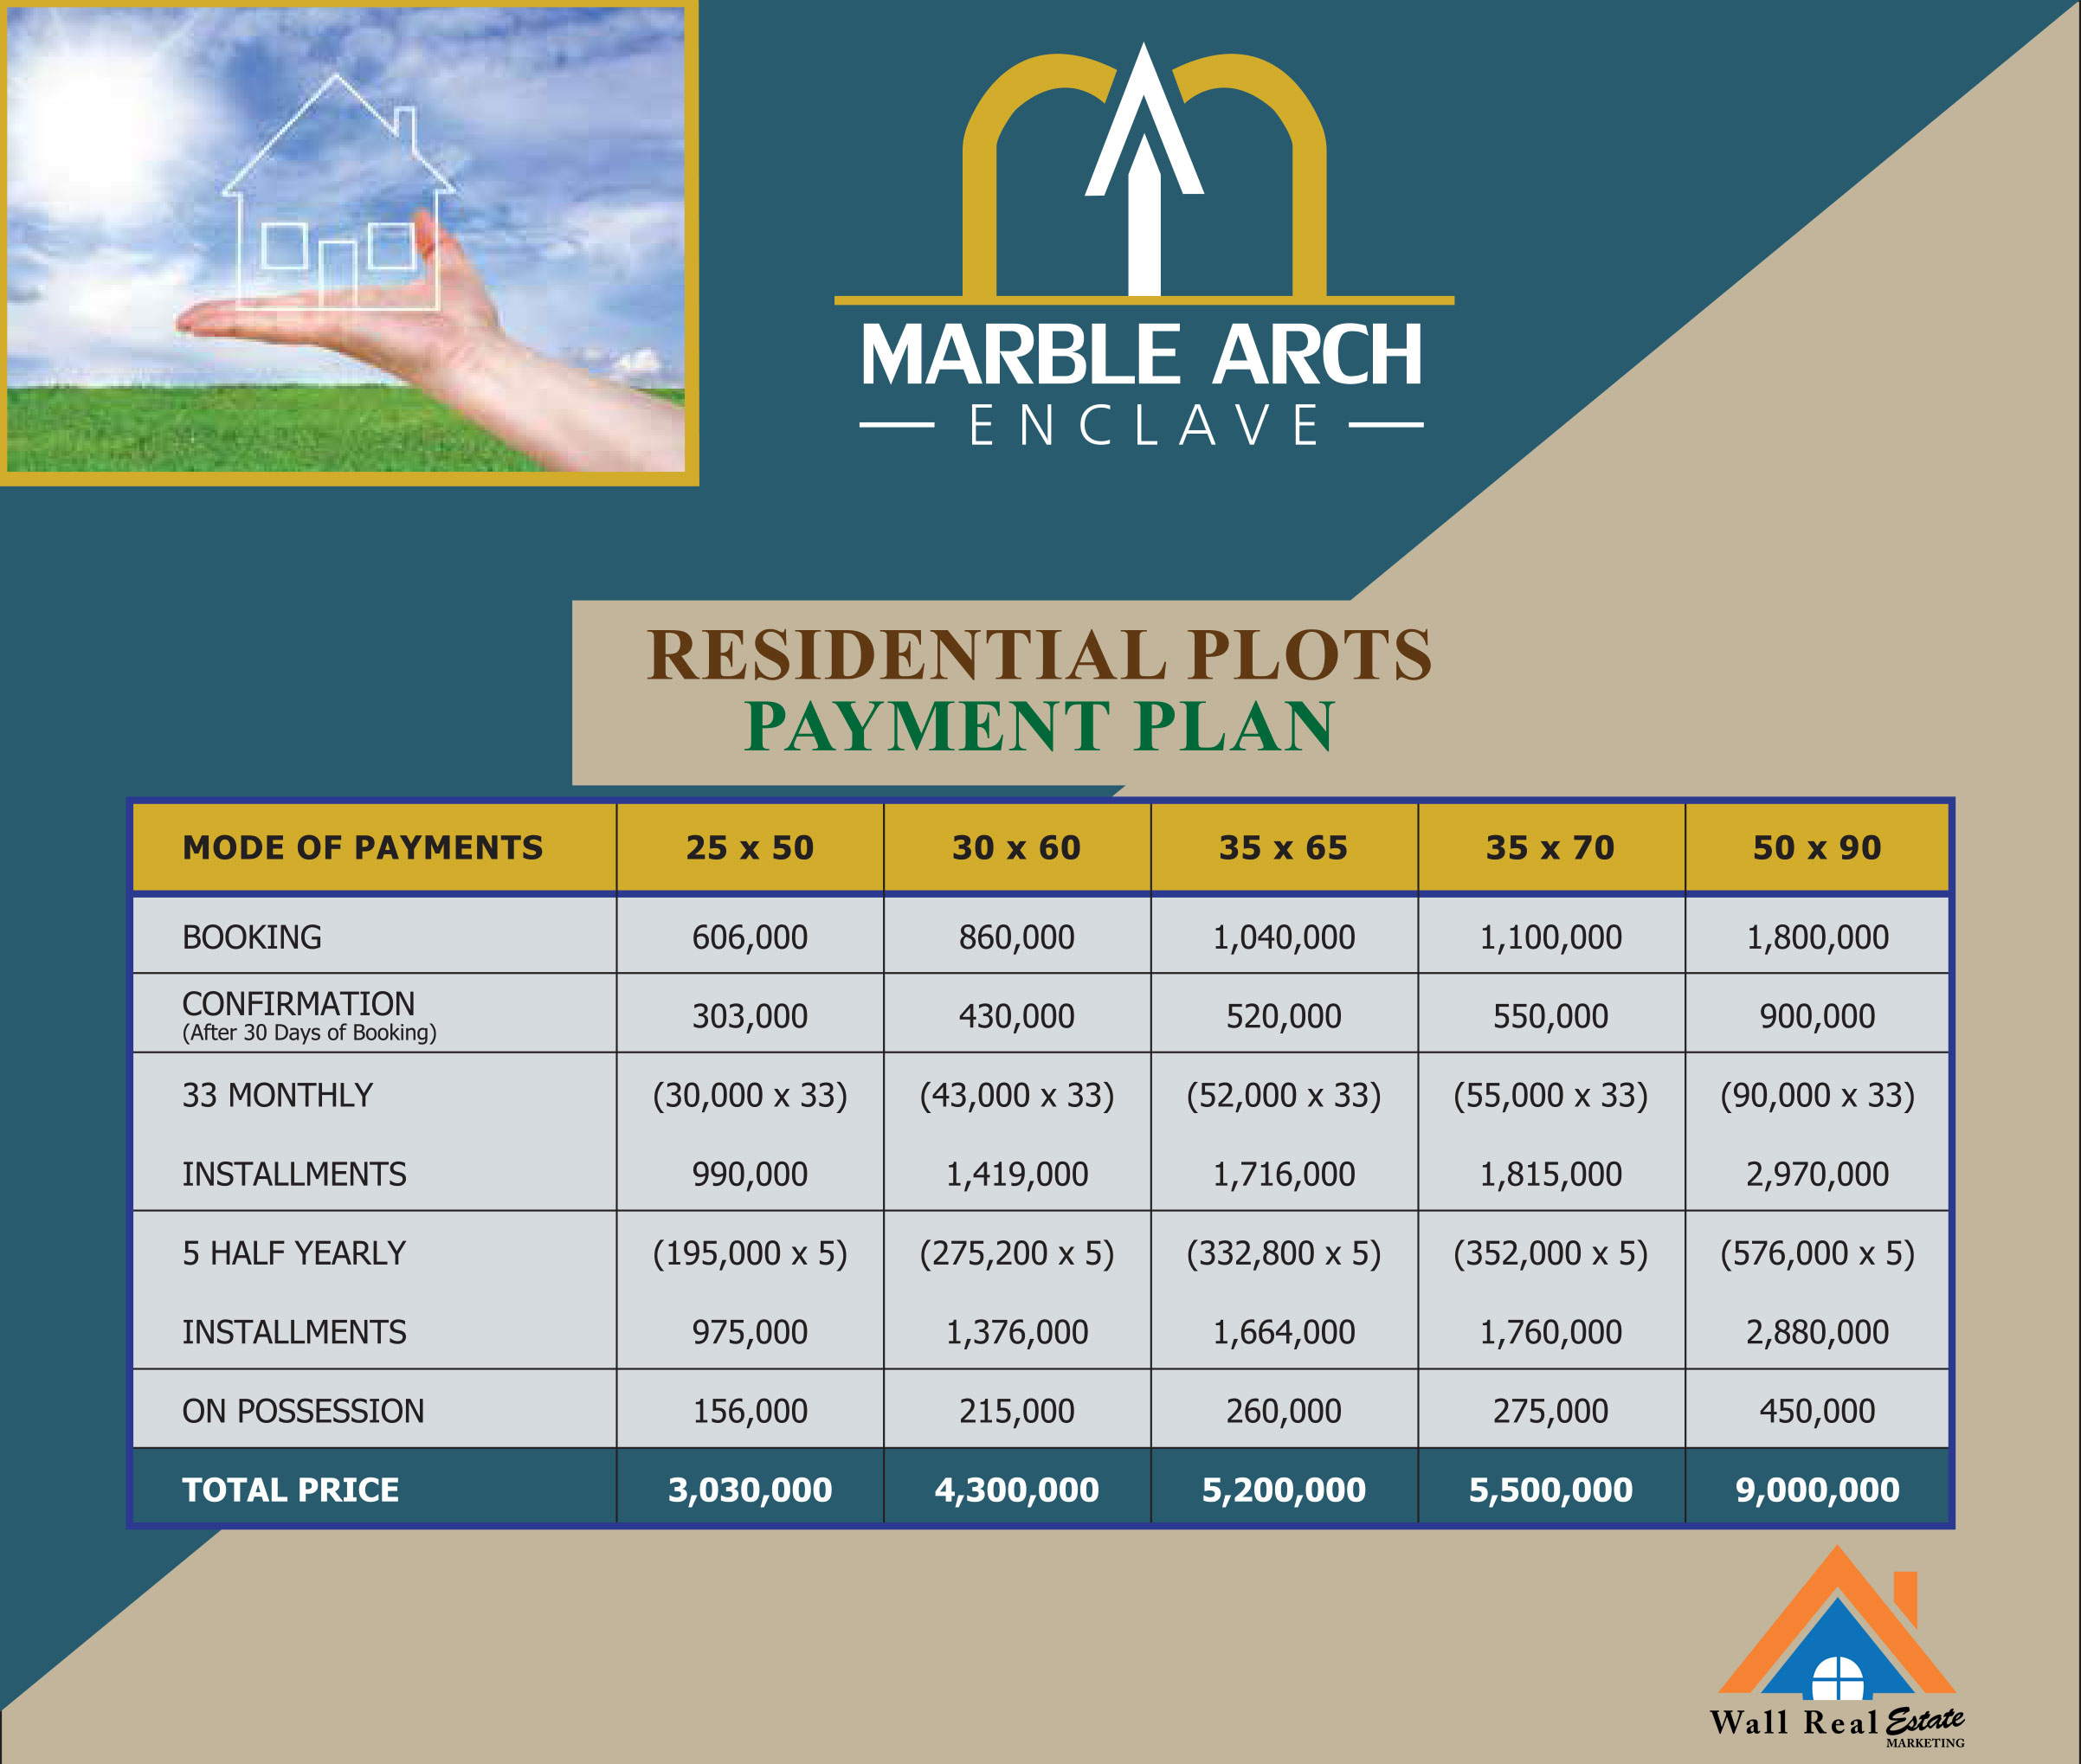 Marble-Arch-Enclave-Residential-Plots-Payment-Plan